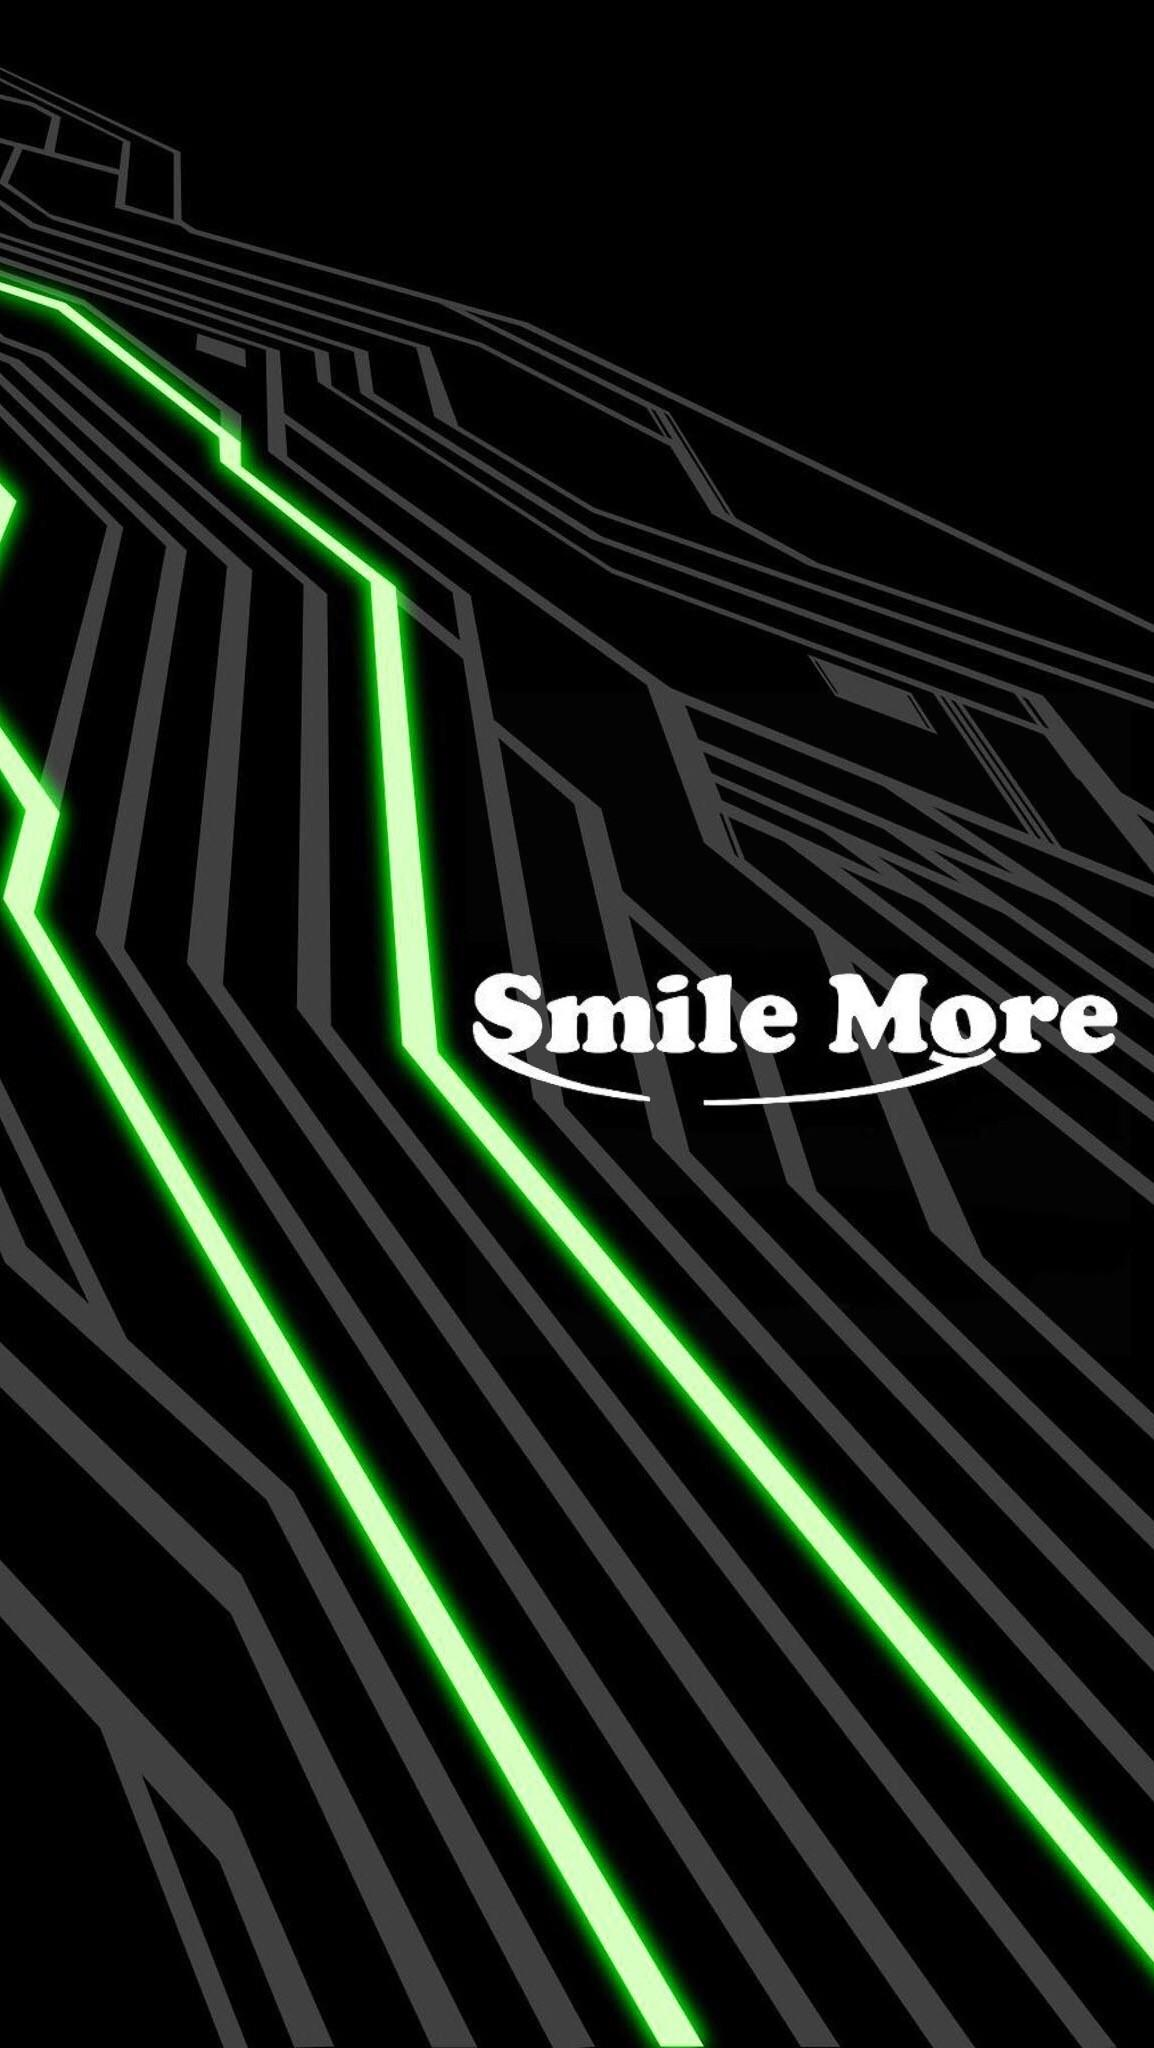 Smile Hd Iphone Wallpapers Wallpaper Cave